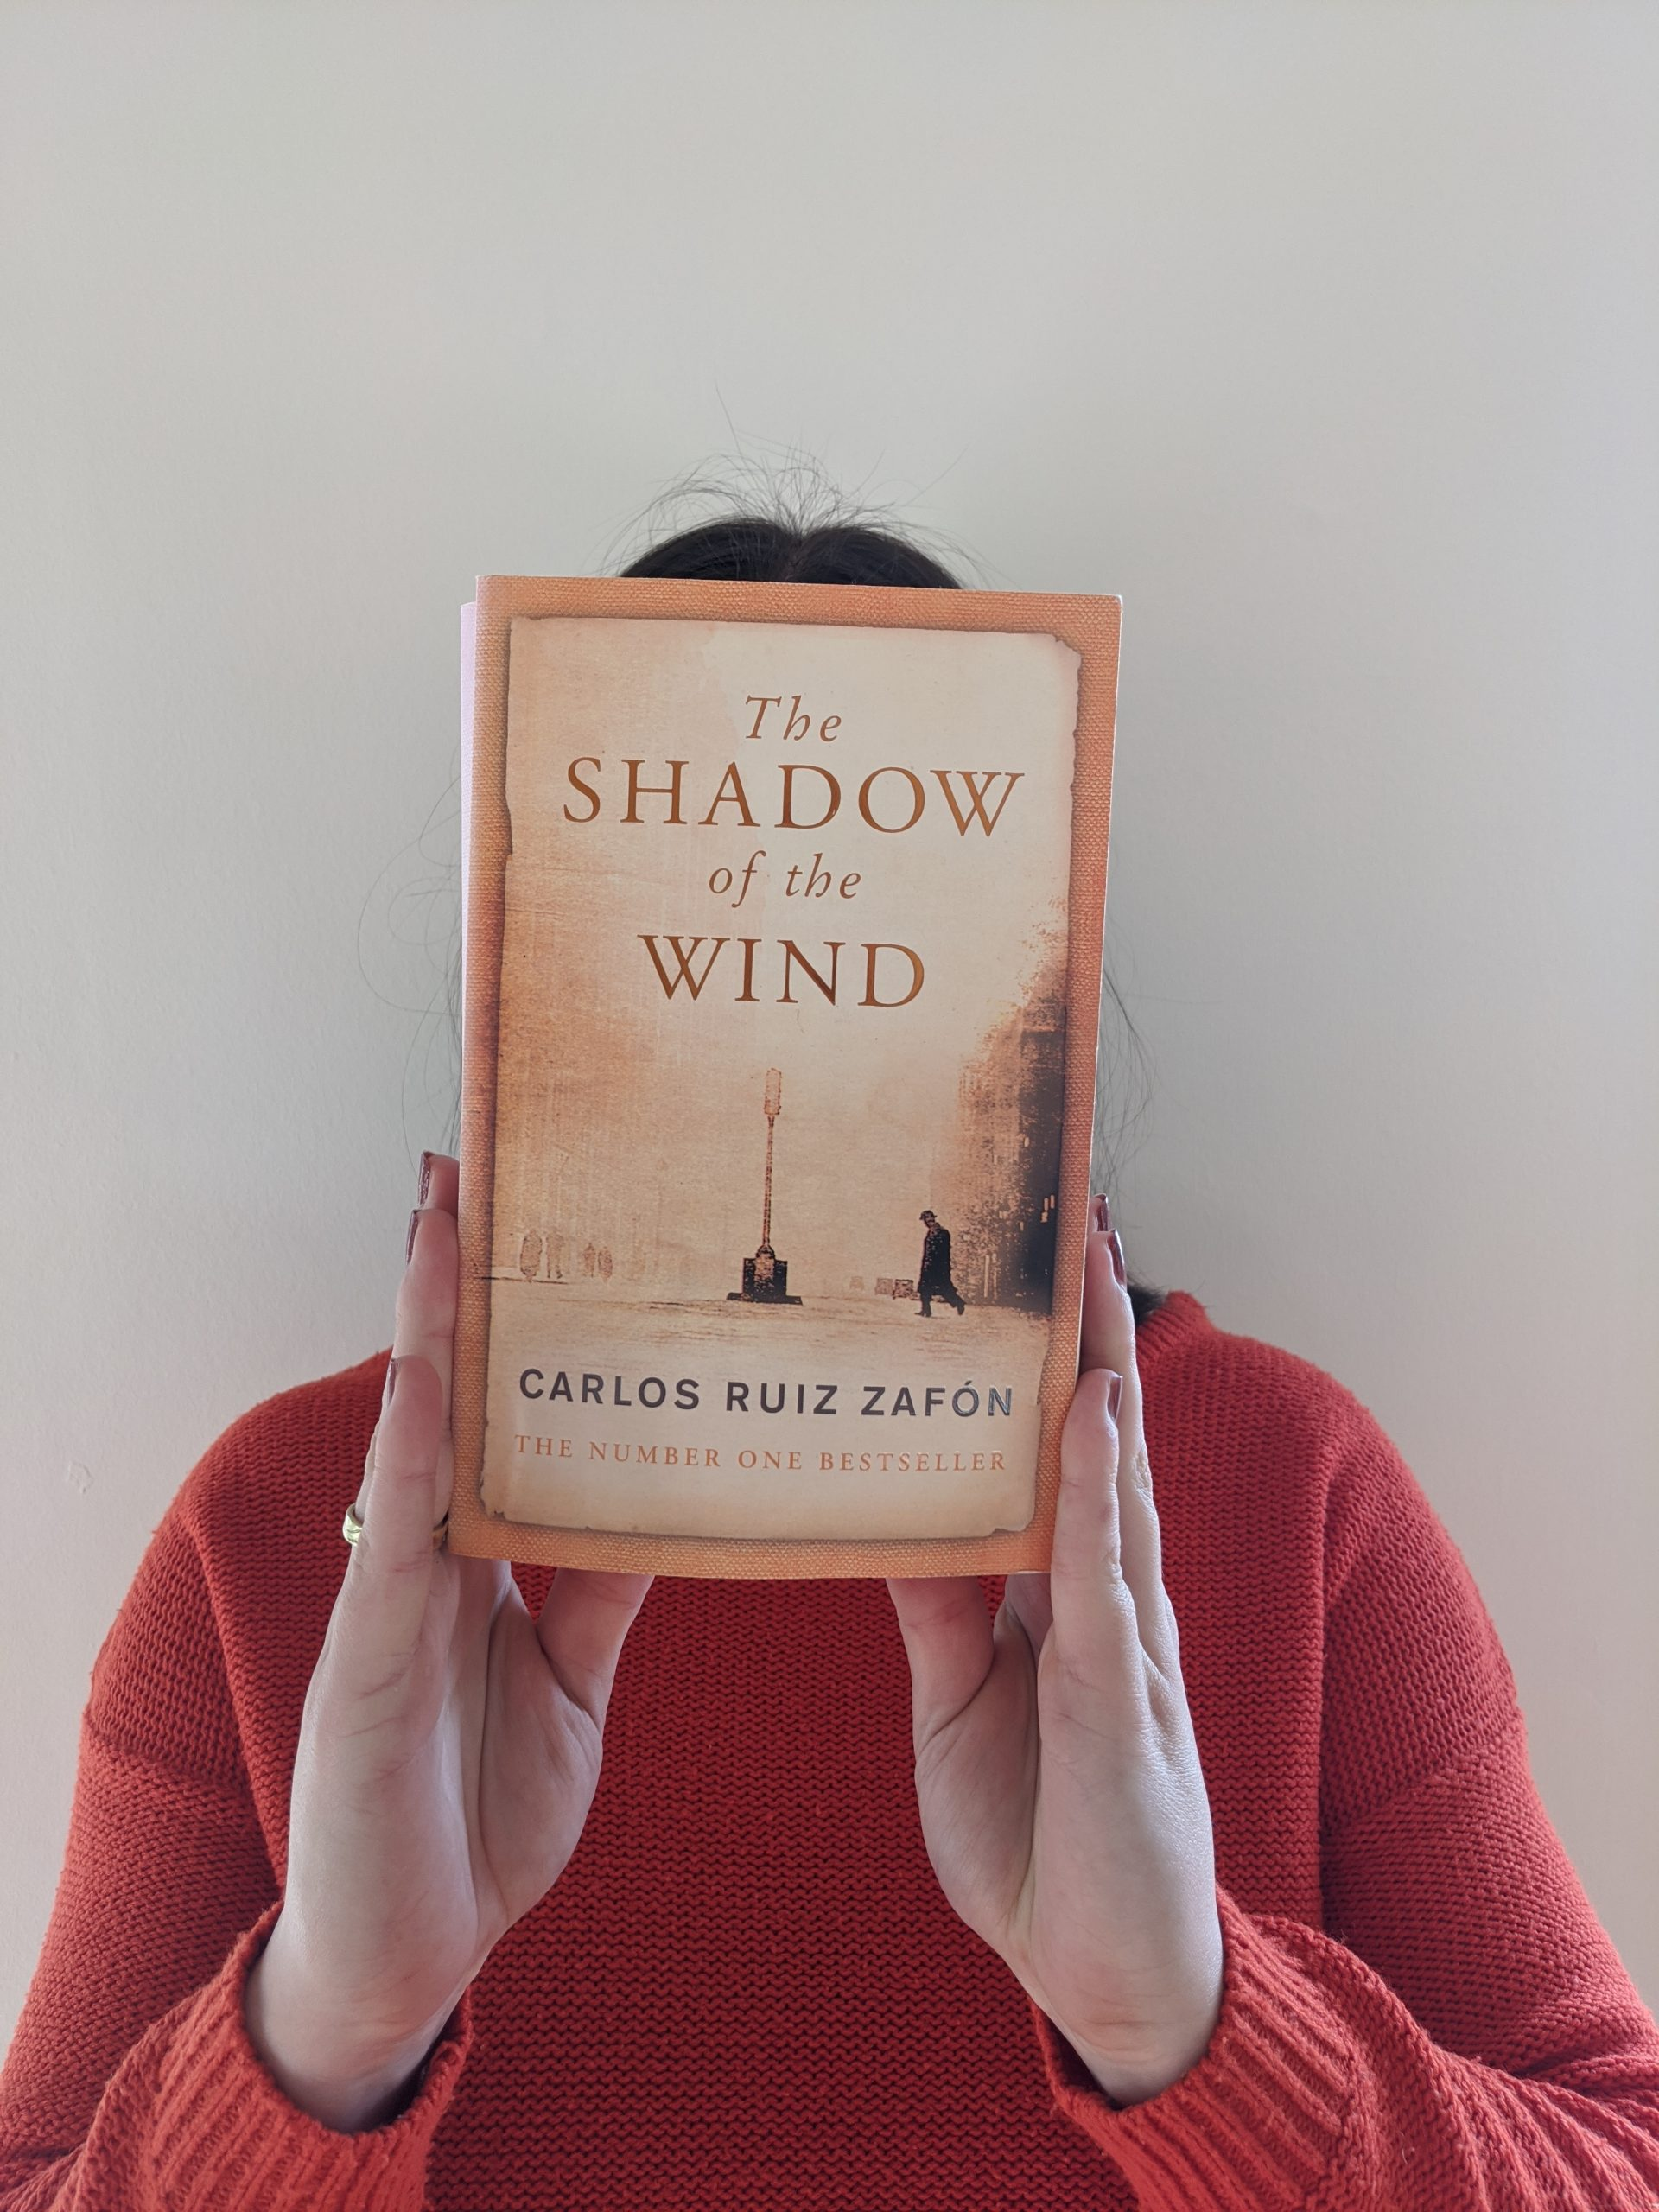 The Shadow of the Wind – Carlos Ruiz Zafón